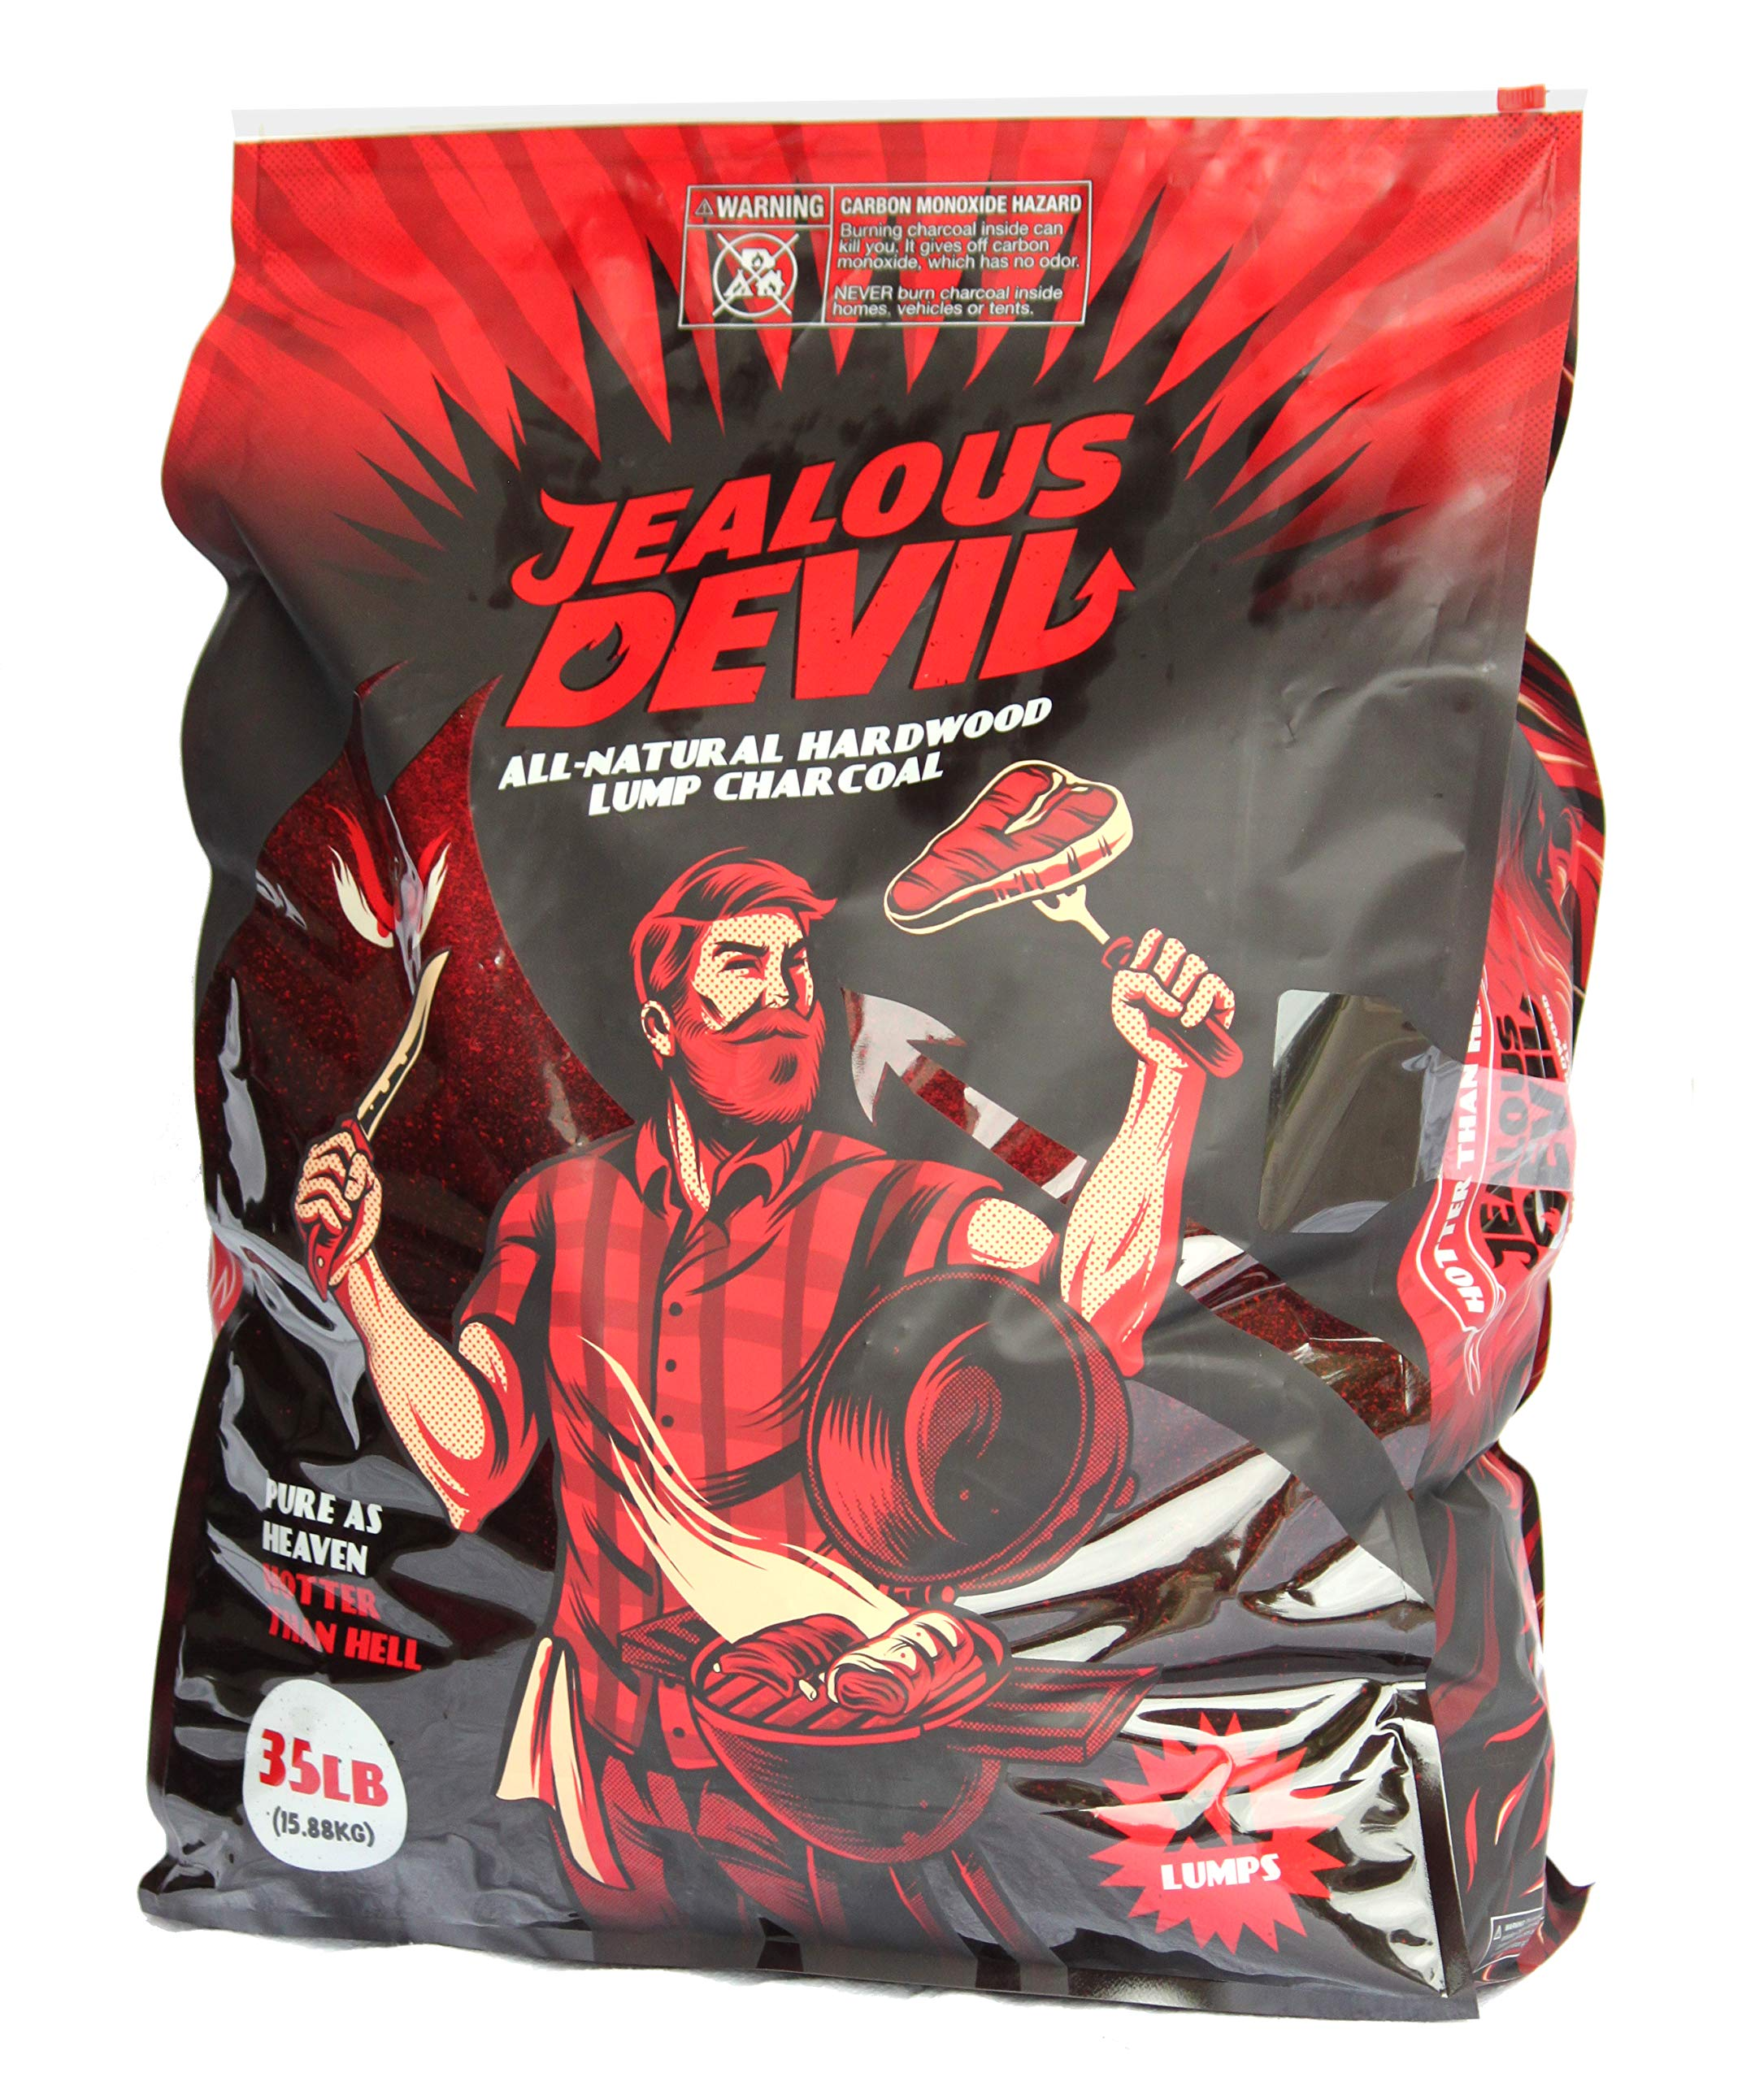 Jealous Devil All Natural Hardwood Lump Charcoal - 35LB by Jealous Devil